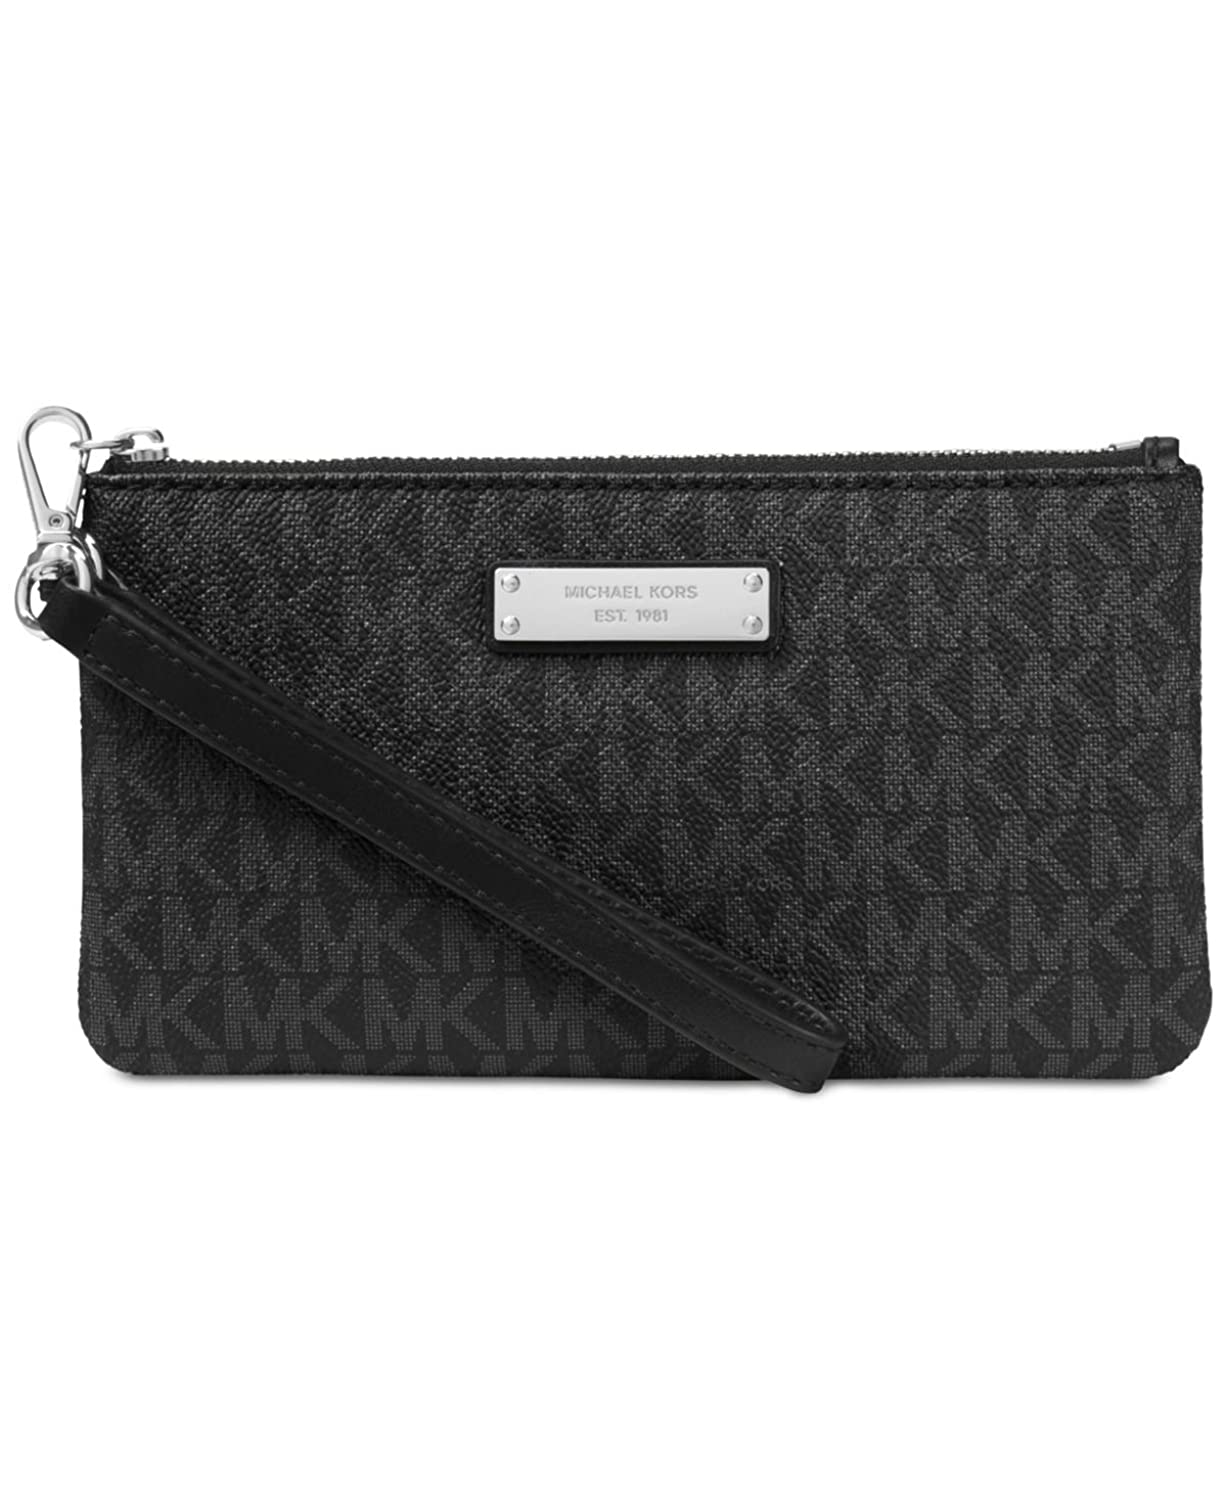 af883c701ed1 Buy michael kors wristlet strap replacement   OFF66% Discounted